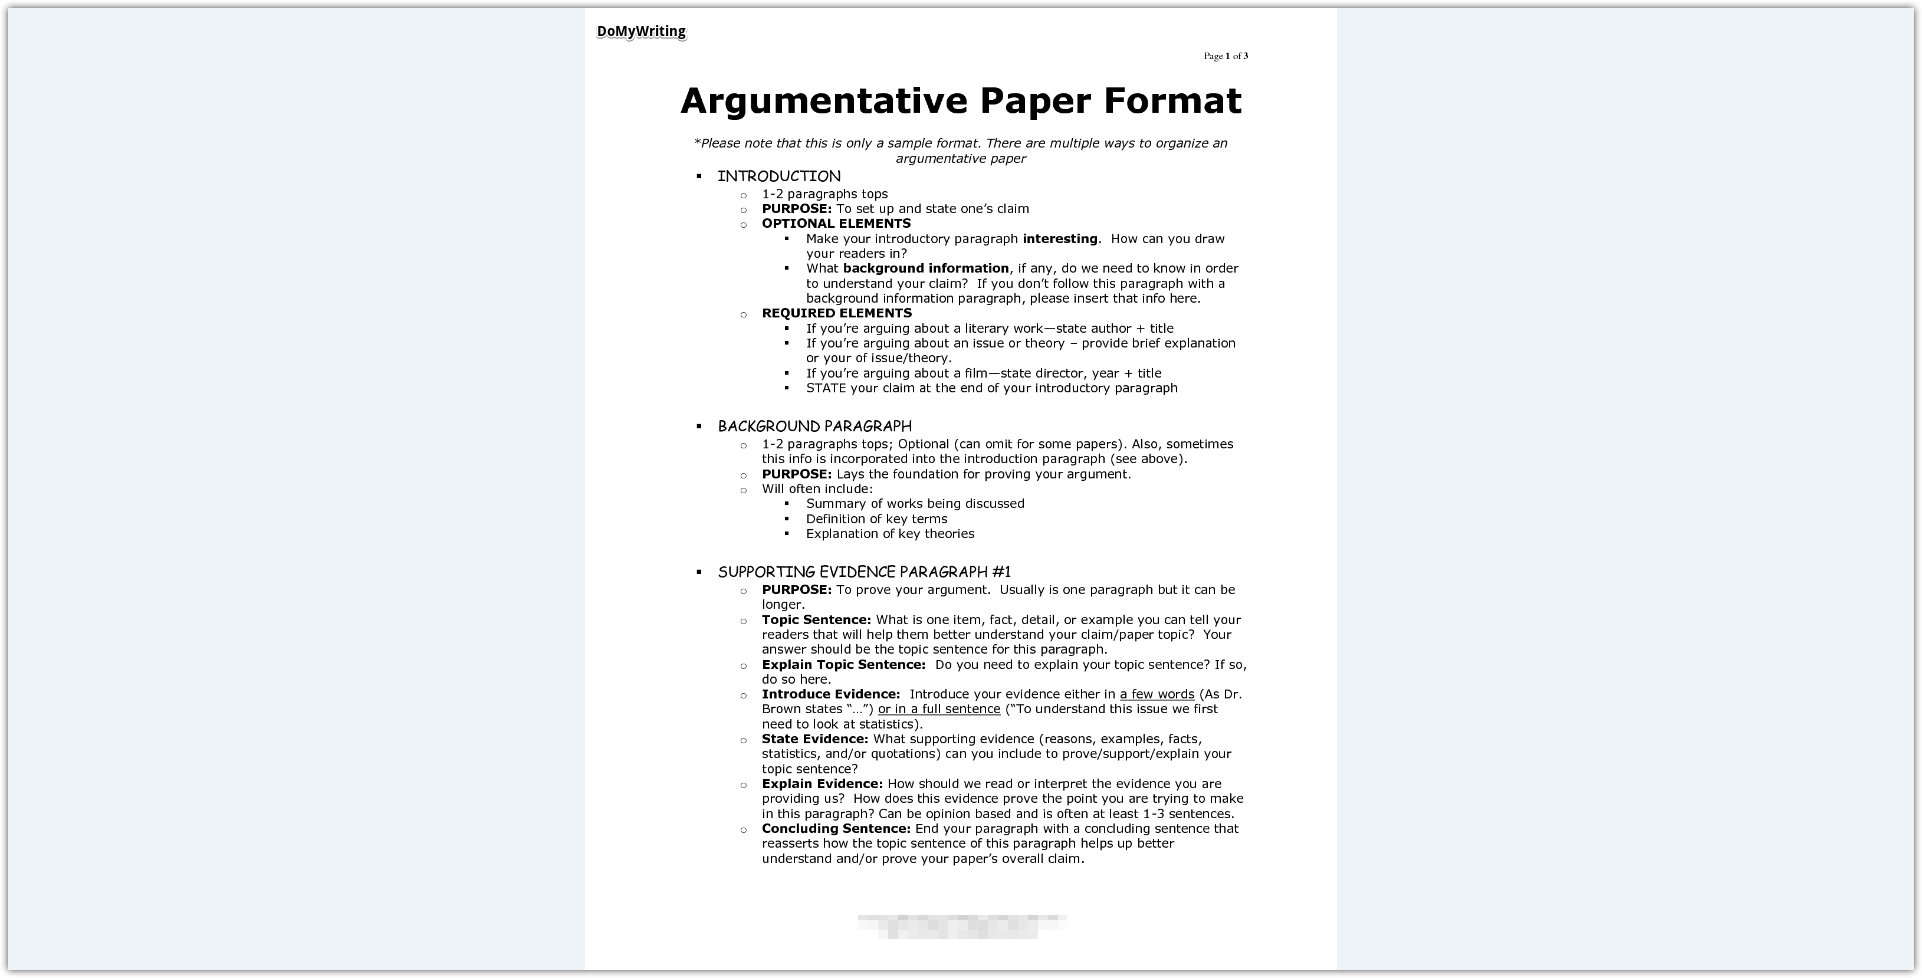 024 Argumentative Essay Format Research Paper Archaicawful Introduction Sample Of Full